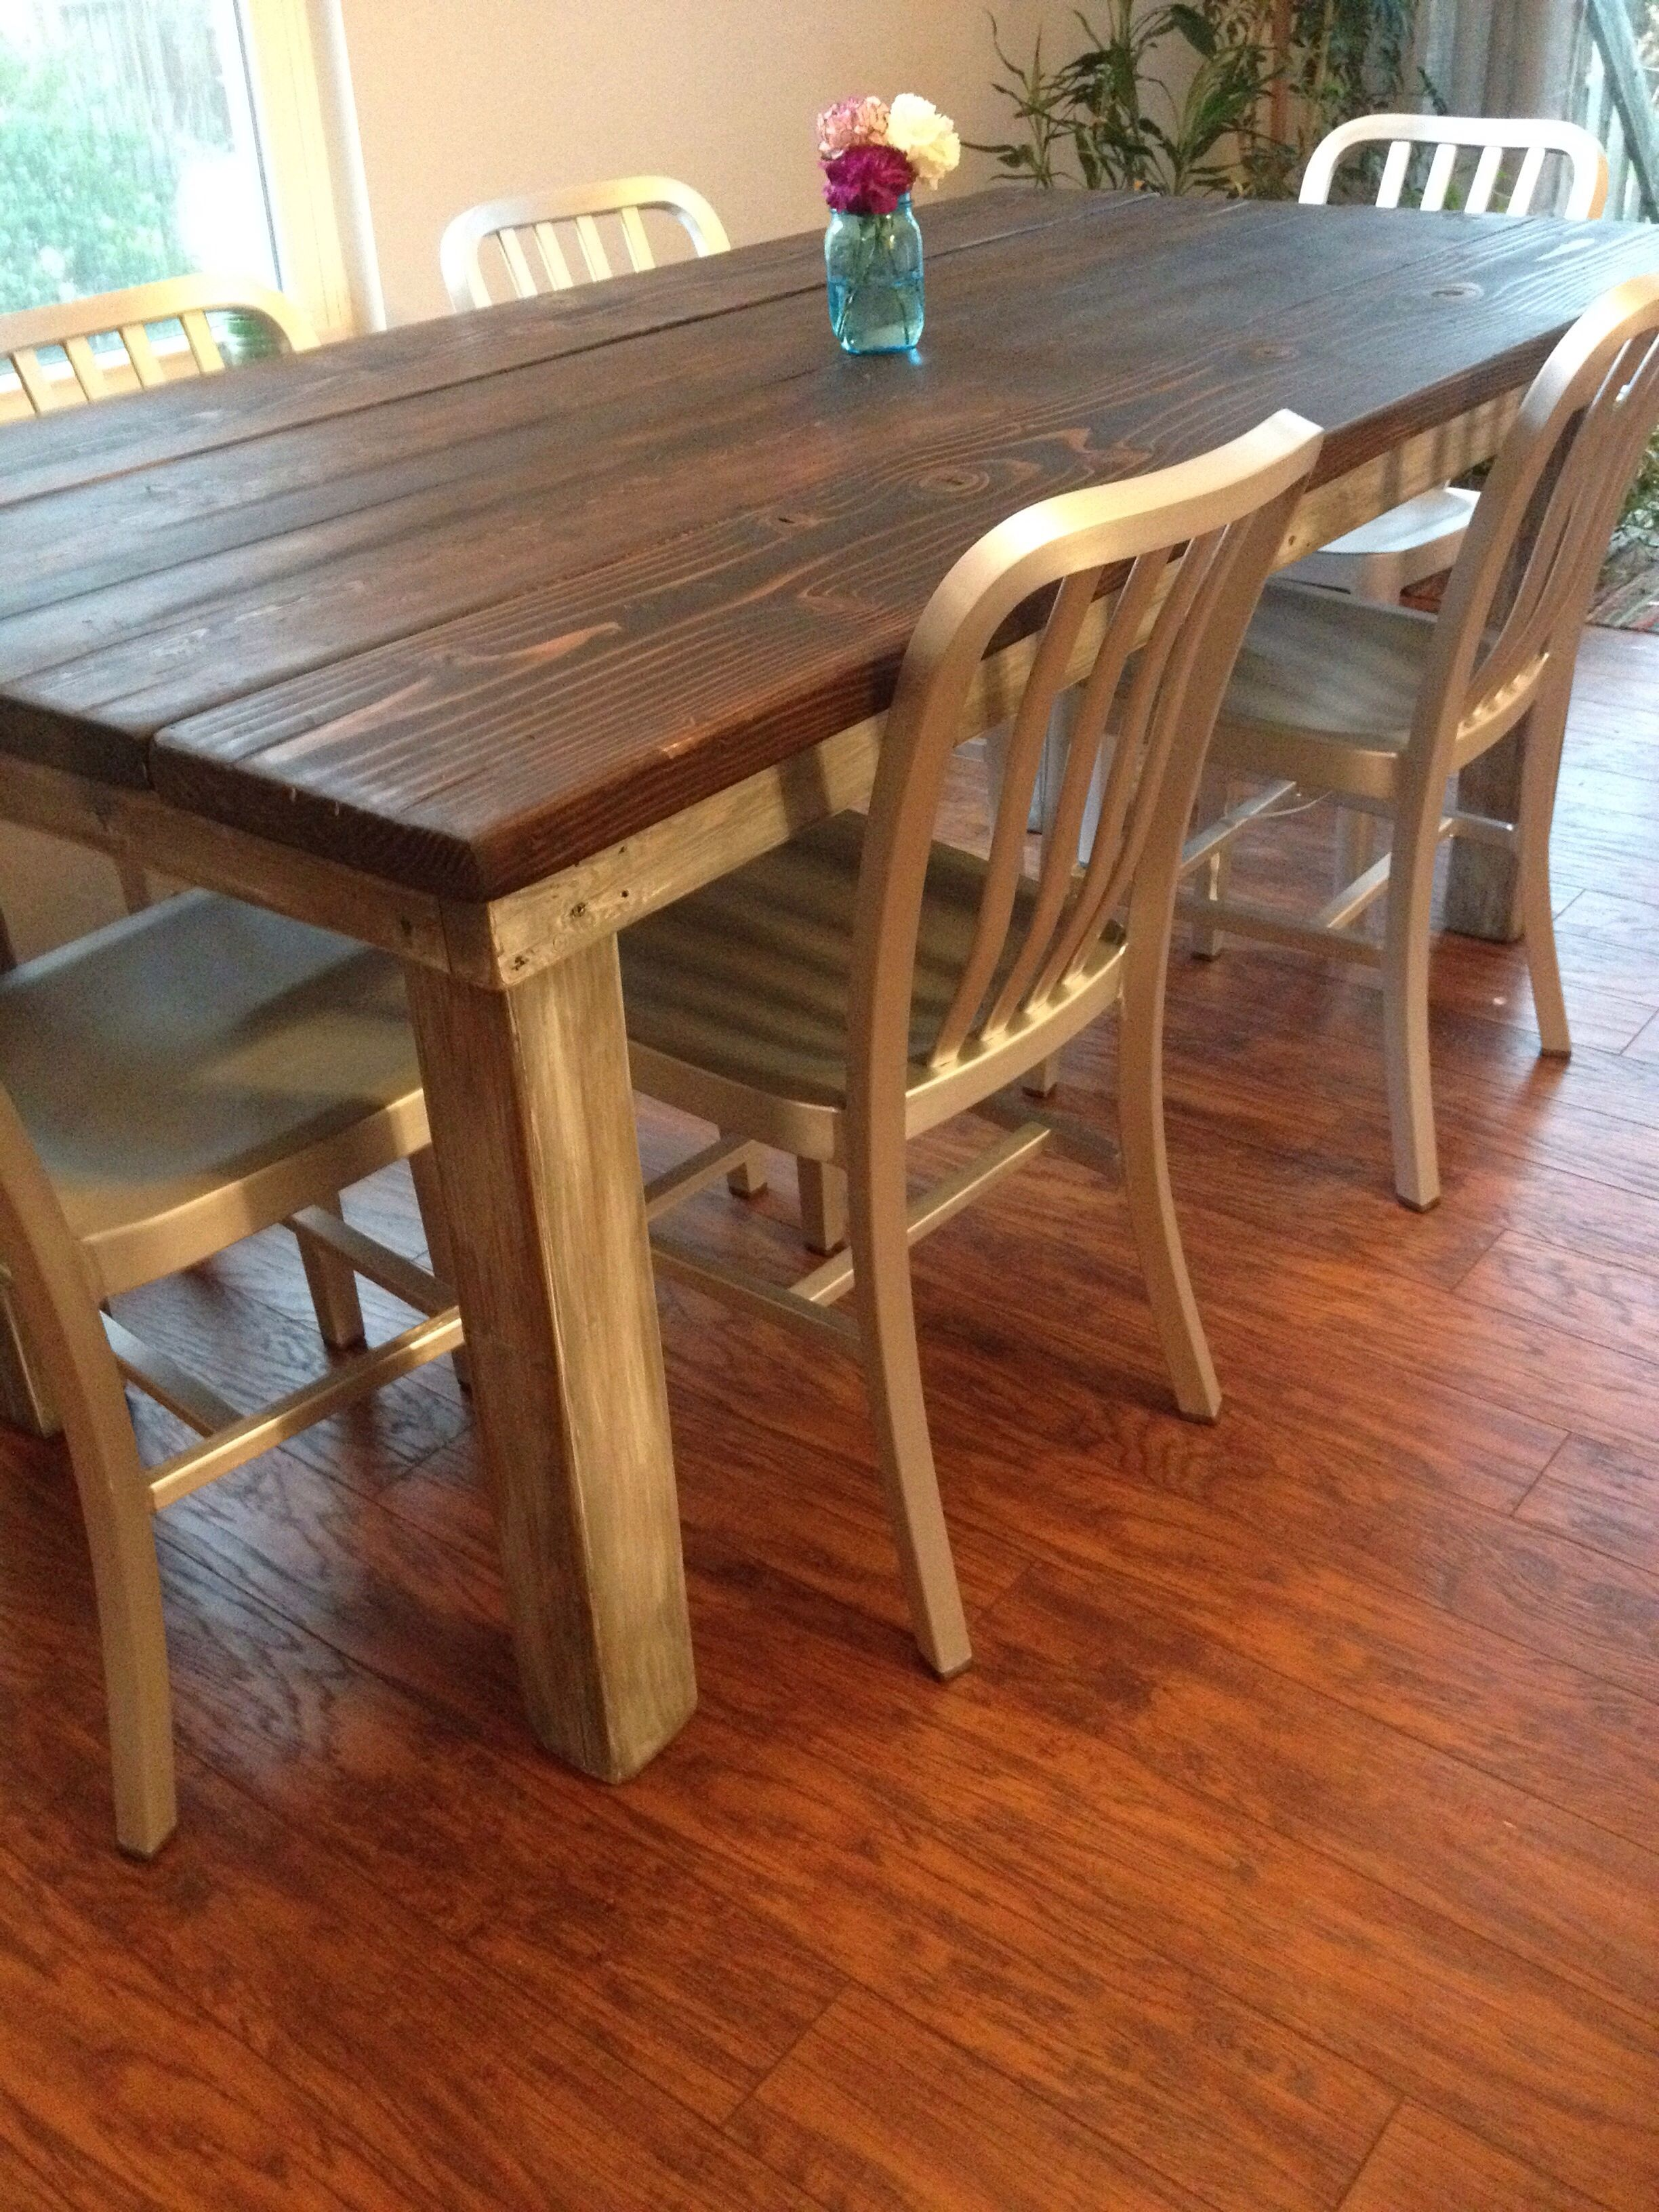 Custom Planked Top Farmhouse Table With Dark Walnut Stain And  White Washed/gray